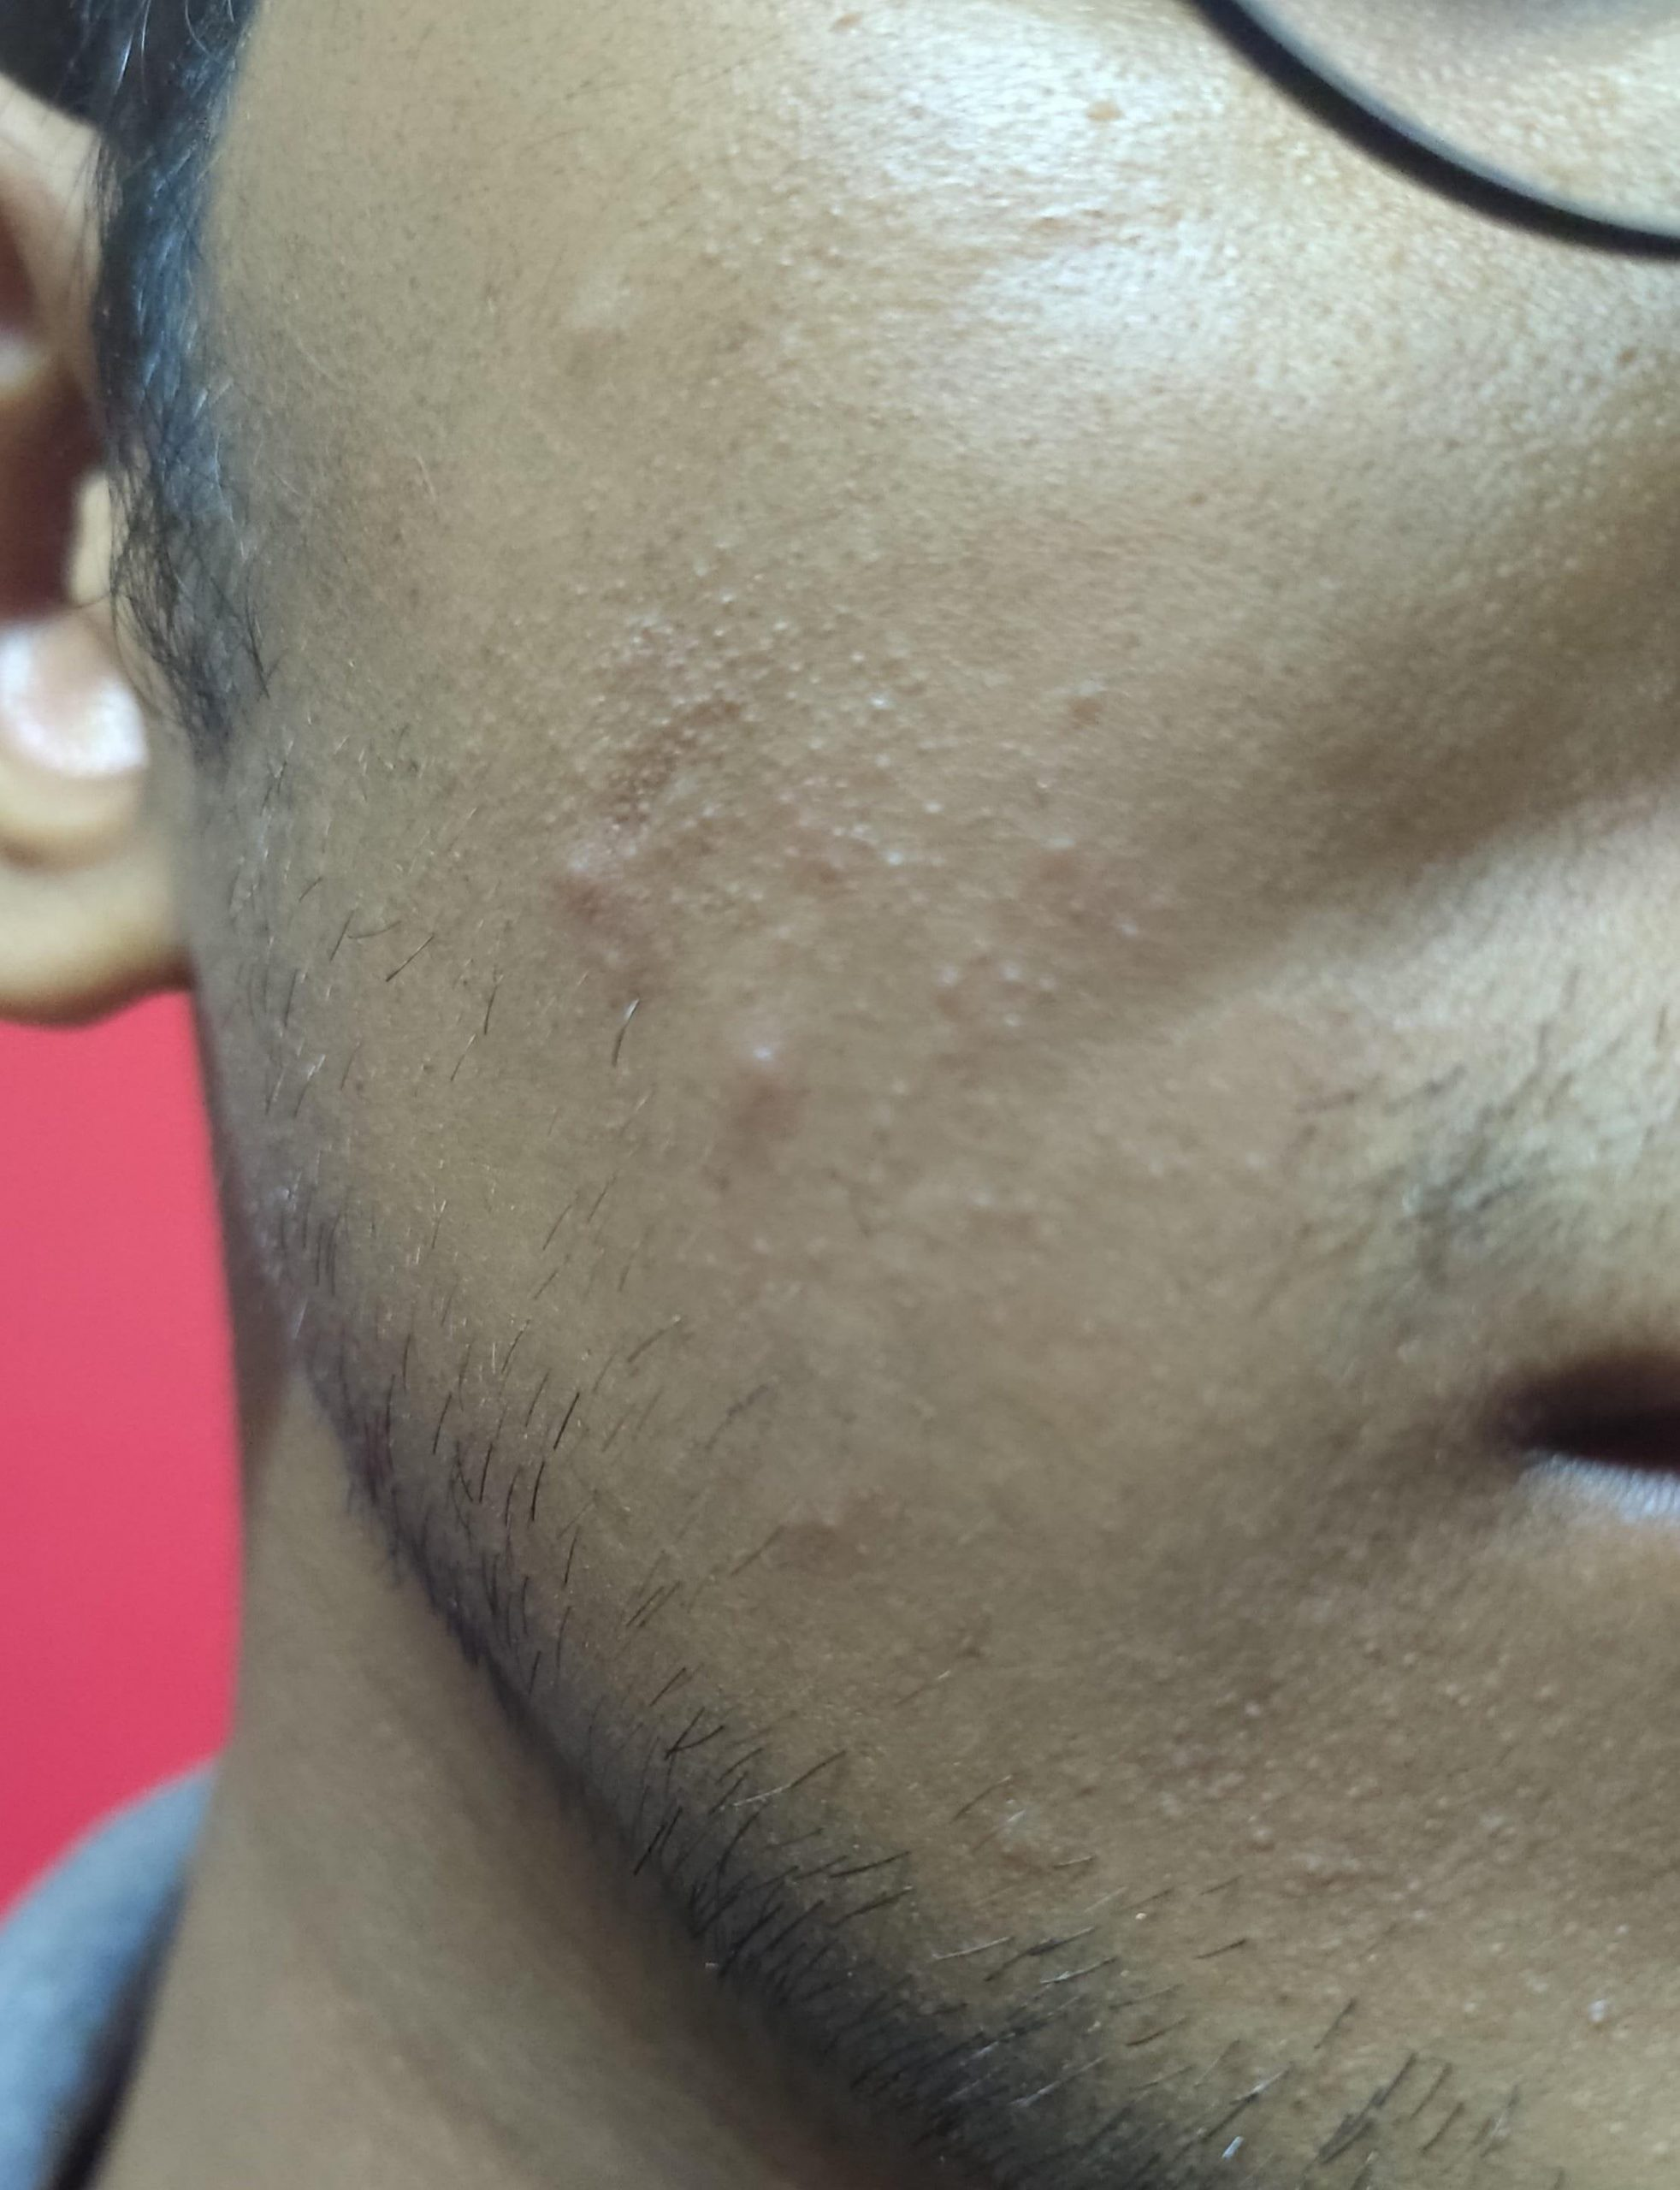 [skin concerns] how to get rid of little bumps on cheeks